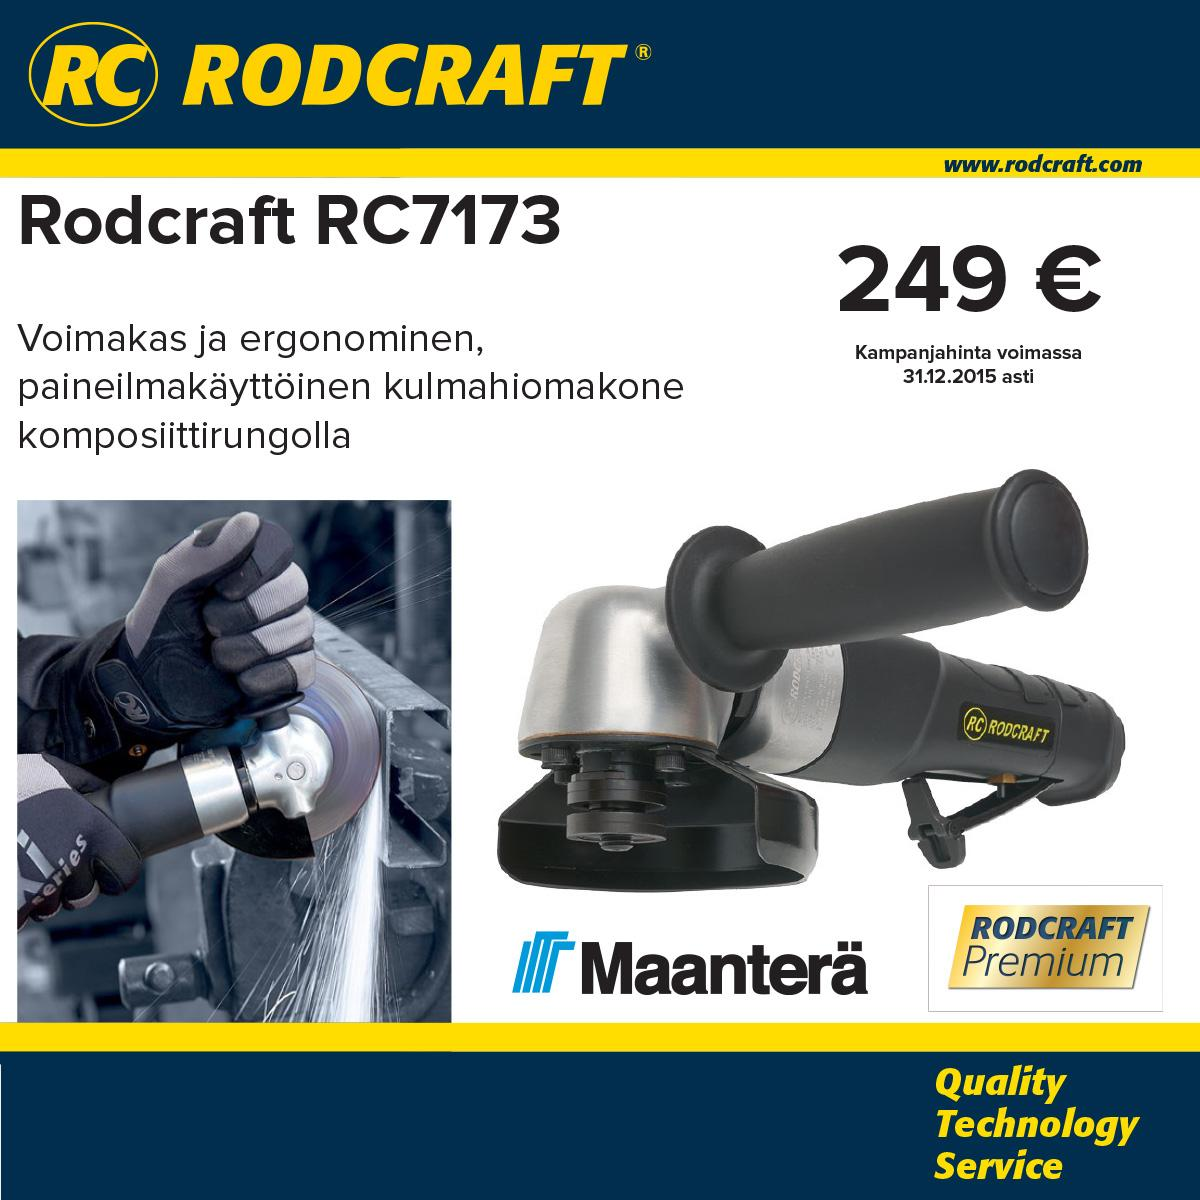 Maantera-Rodcraft-RC7173-kampanja-preview